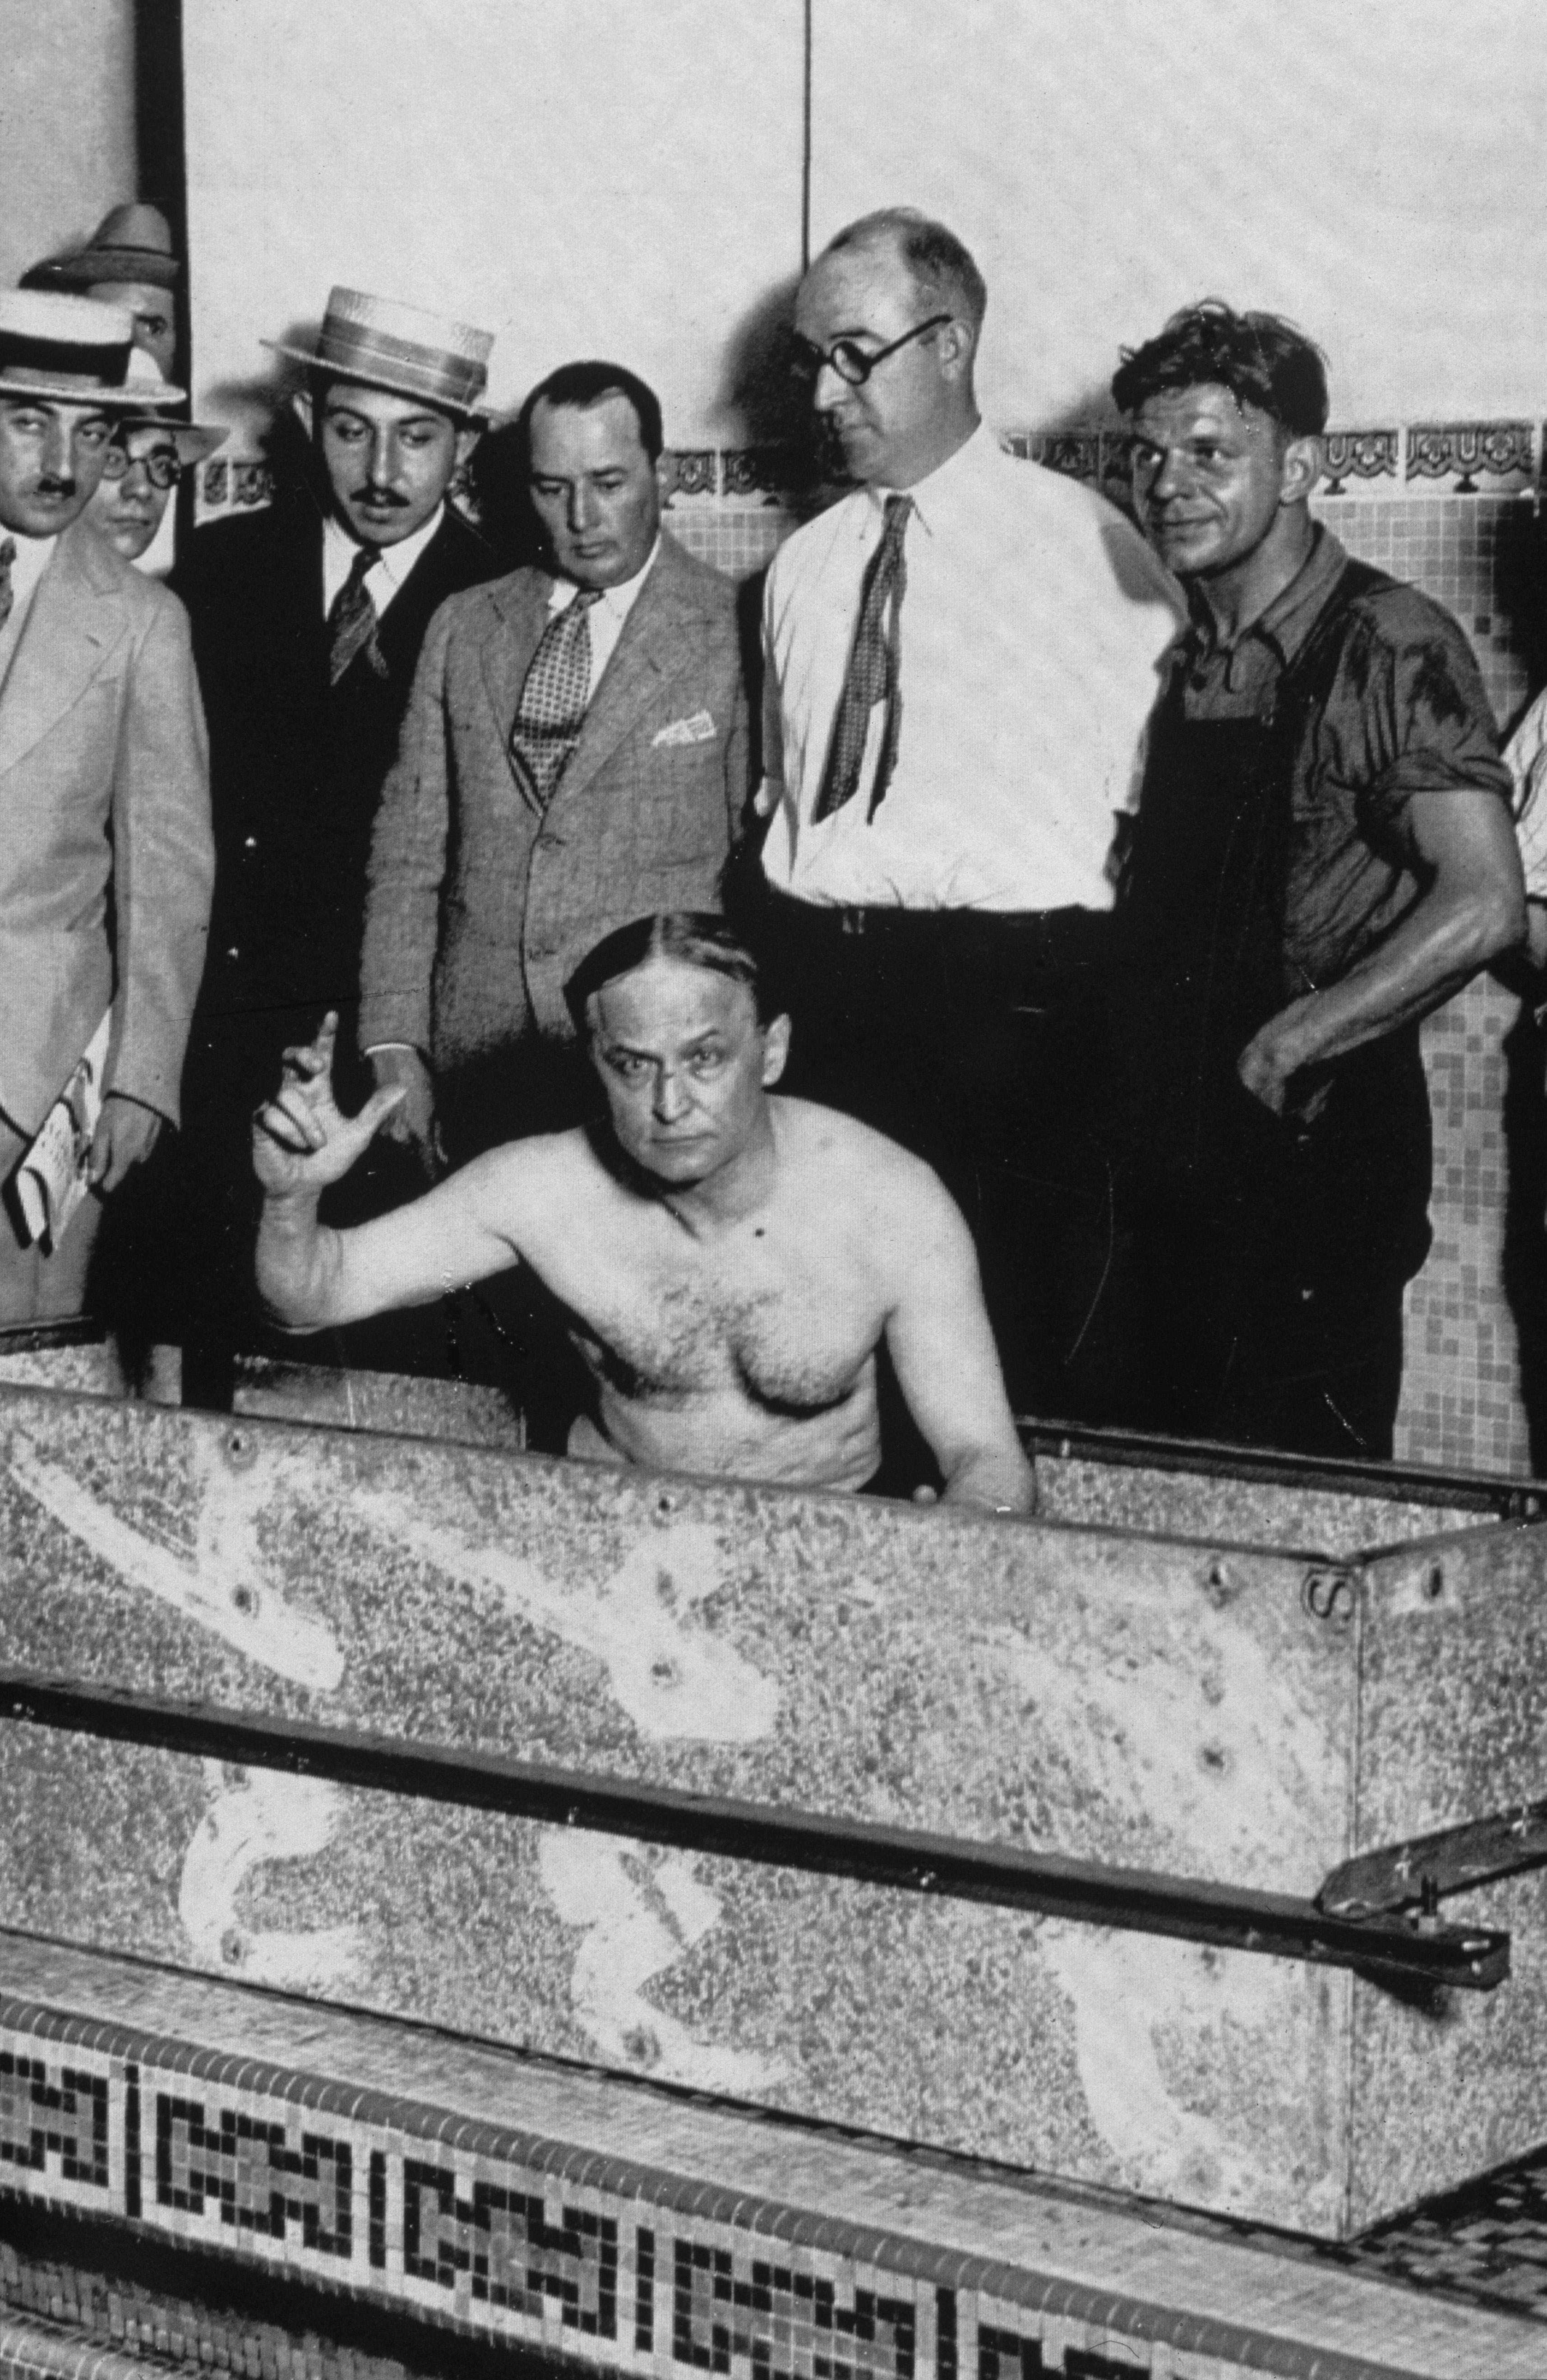 Houdini prepares to be sealed in an airtight casket before being submerged in the pool of the Hotel Shelton in New York, 5th August 1926.